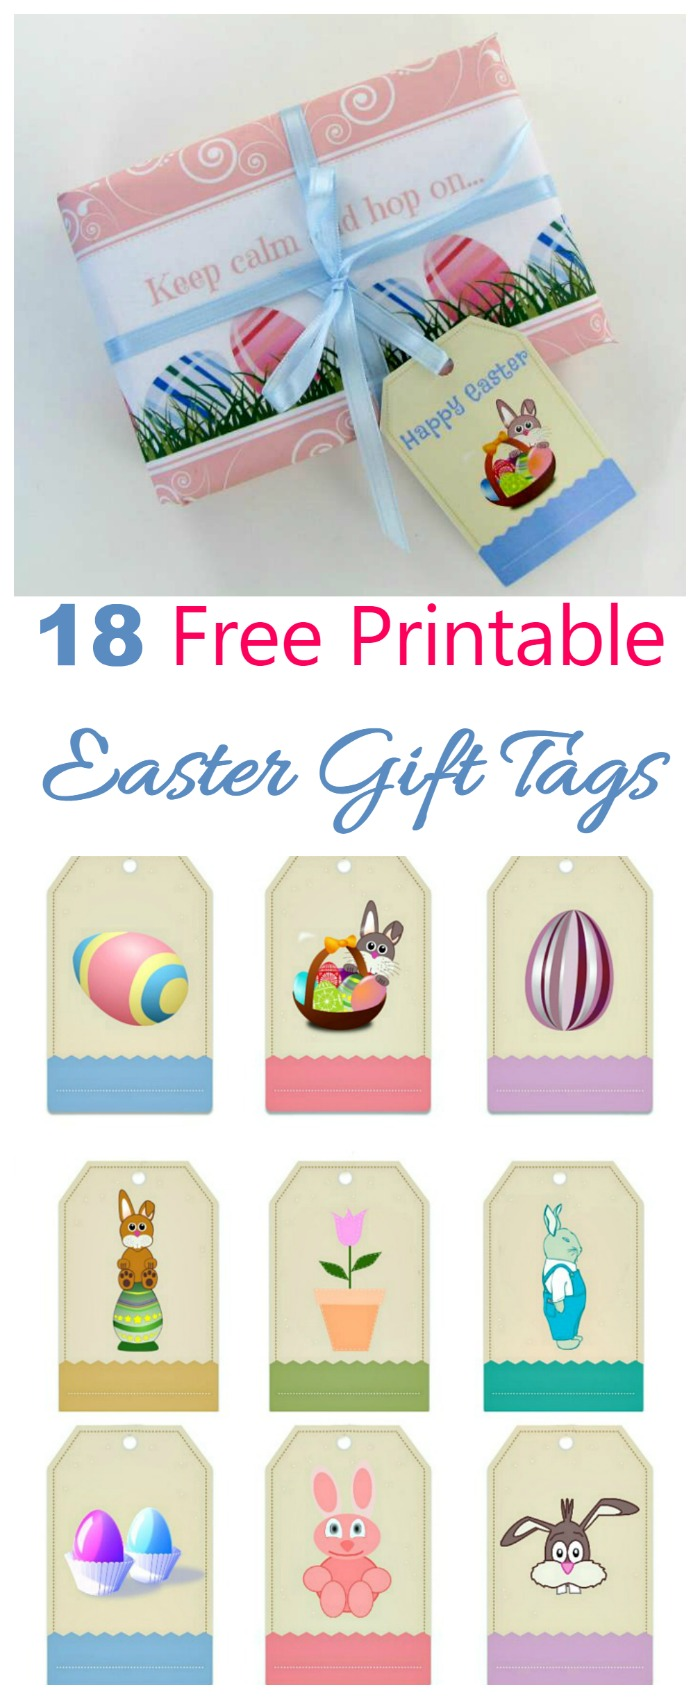 These free printable Easter gift tag labels will add a personalized touch to all your Easter gifts. There are 18 designs and even a small piece of wrapping paper.